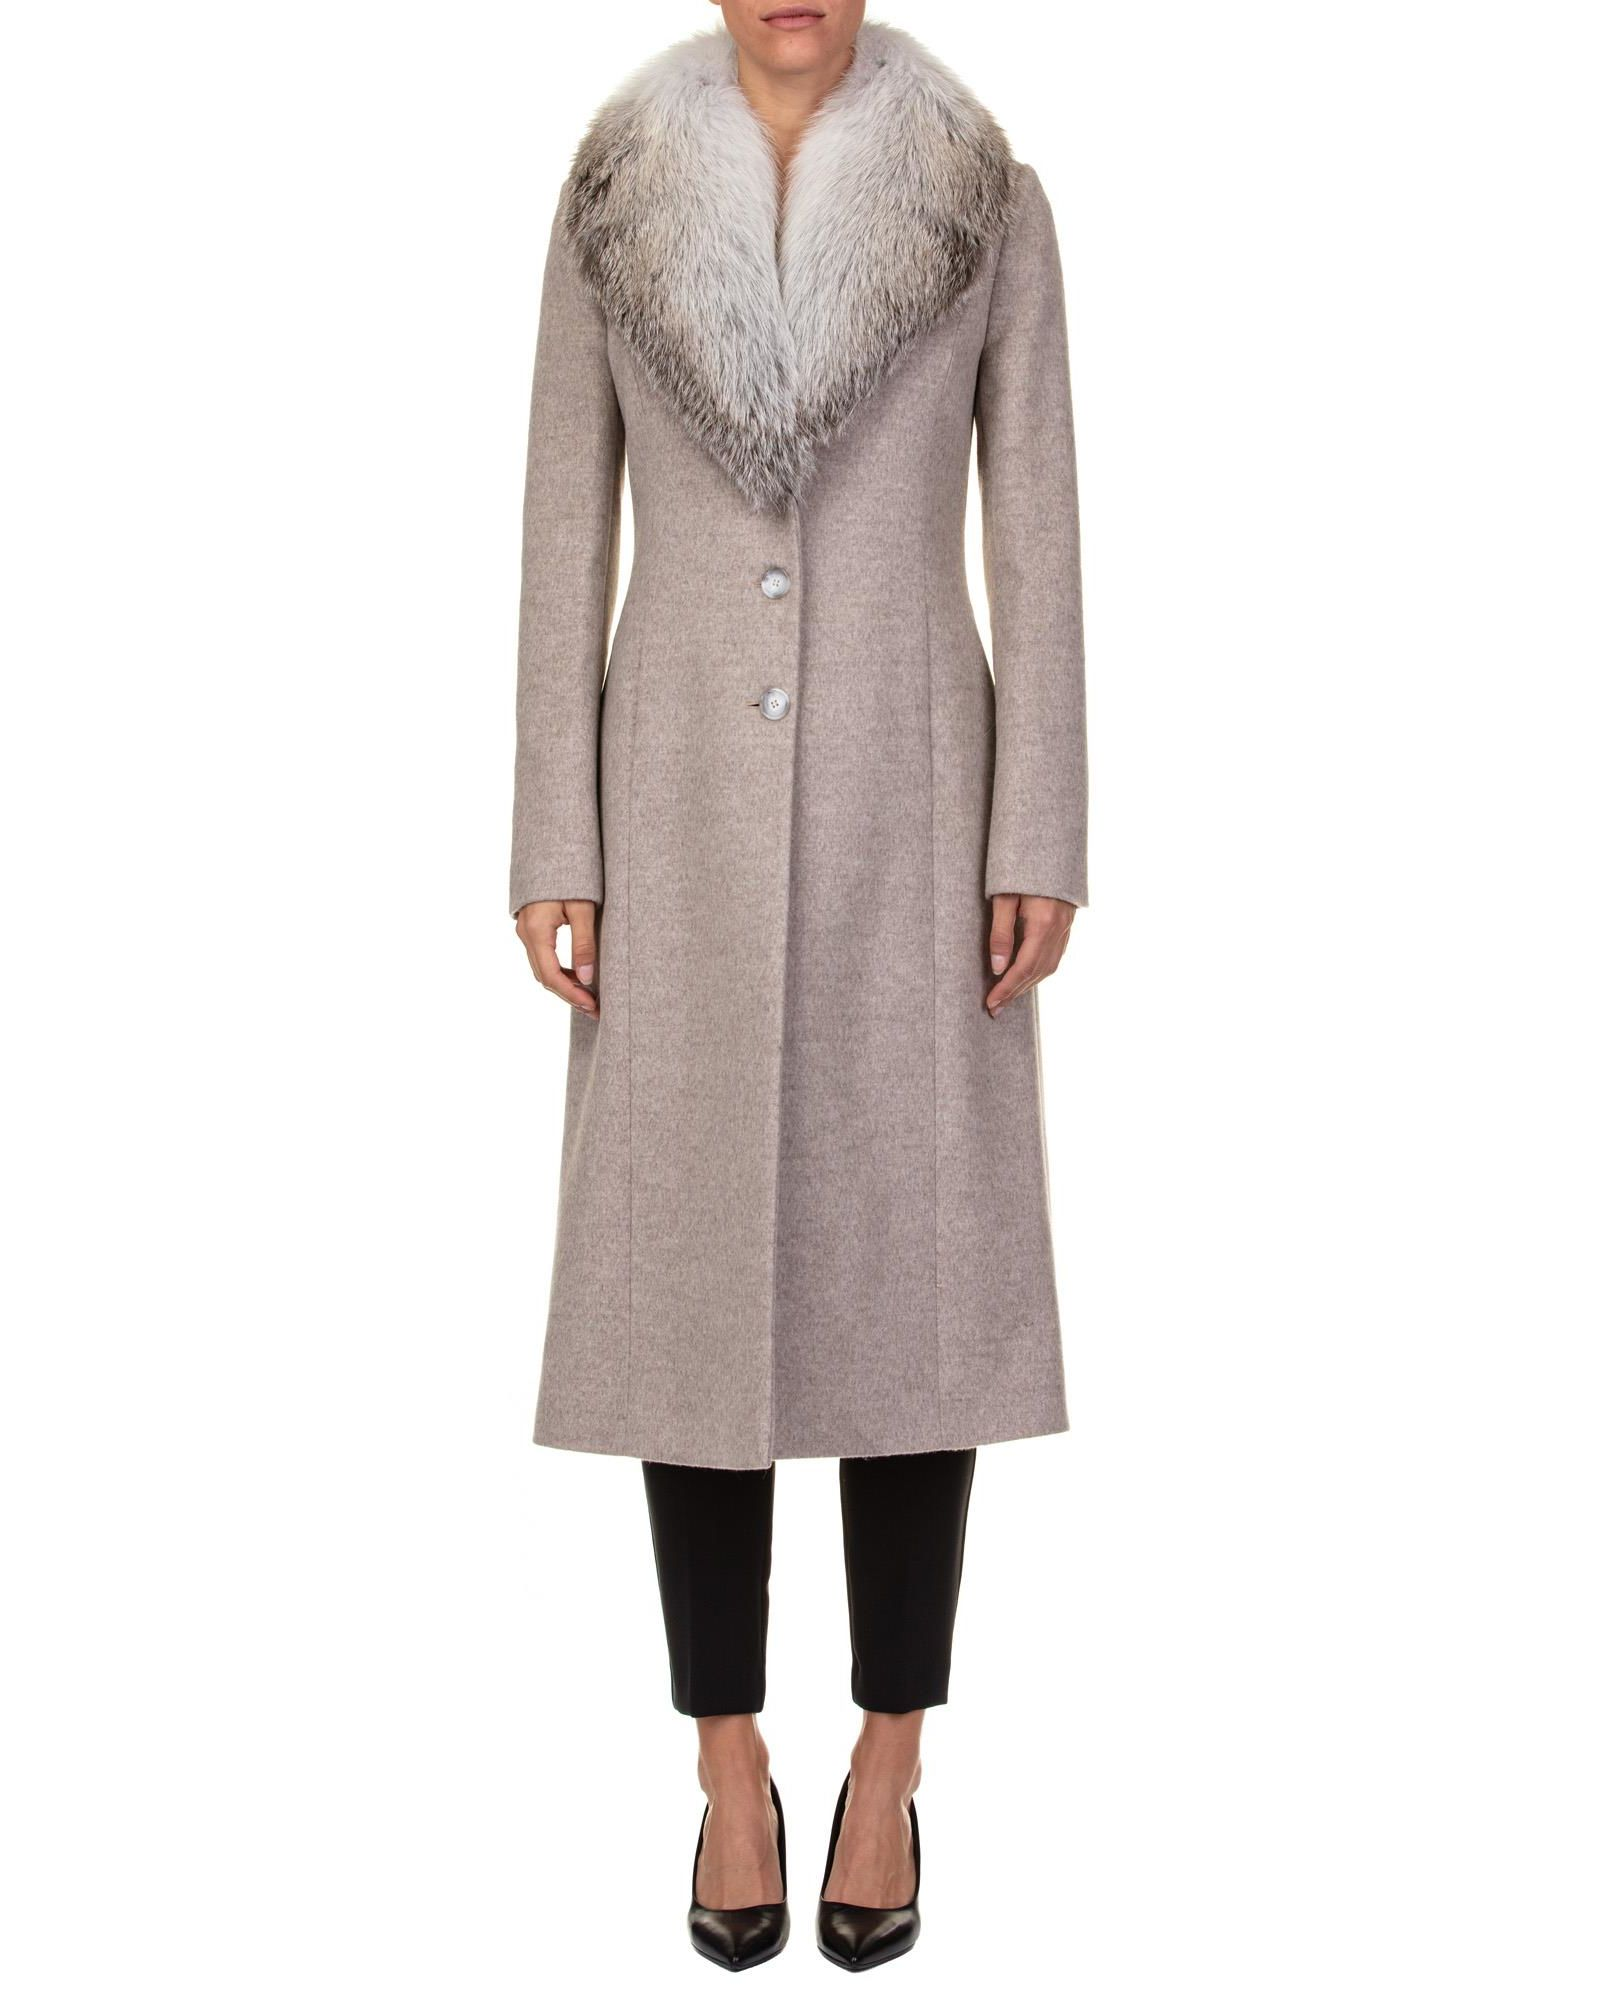 Blumarine VIRGIN WOOL COAT